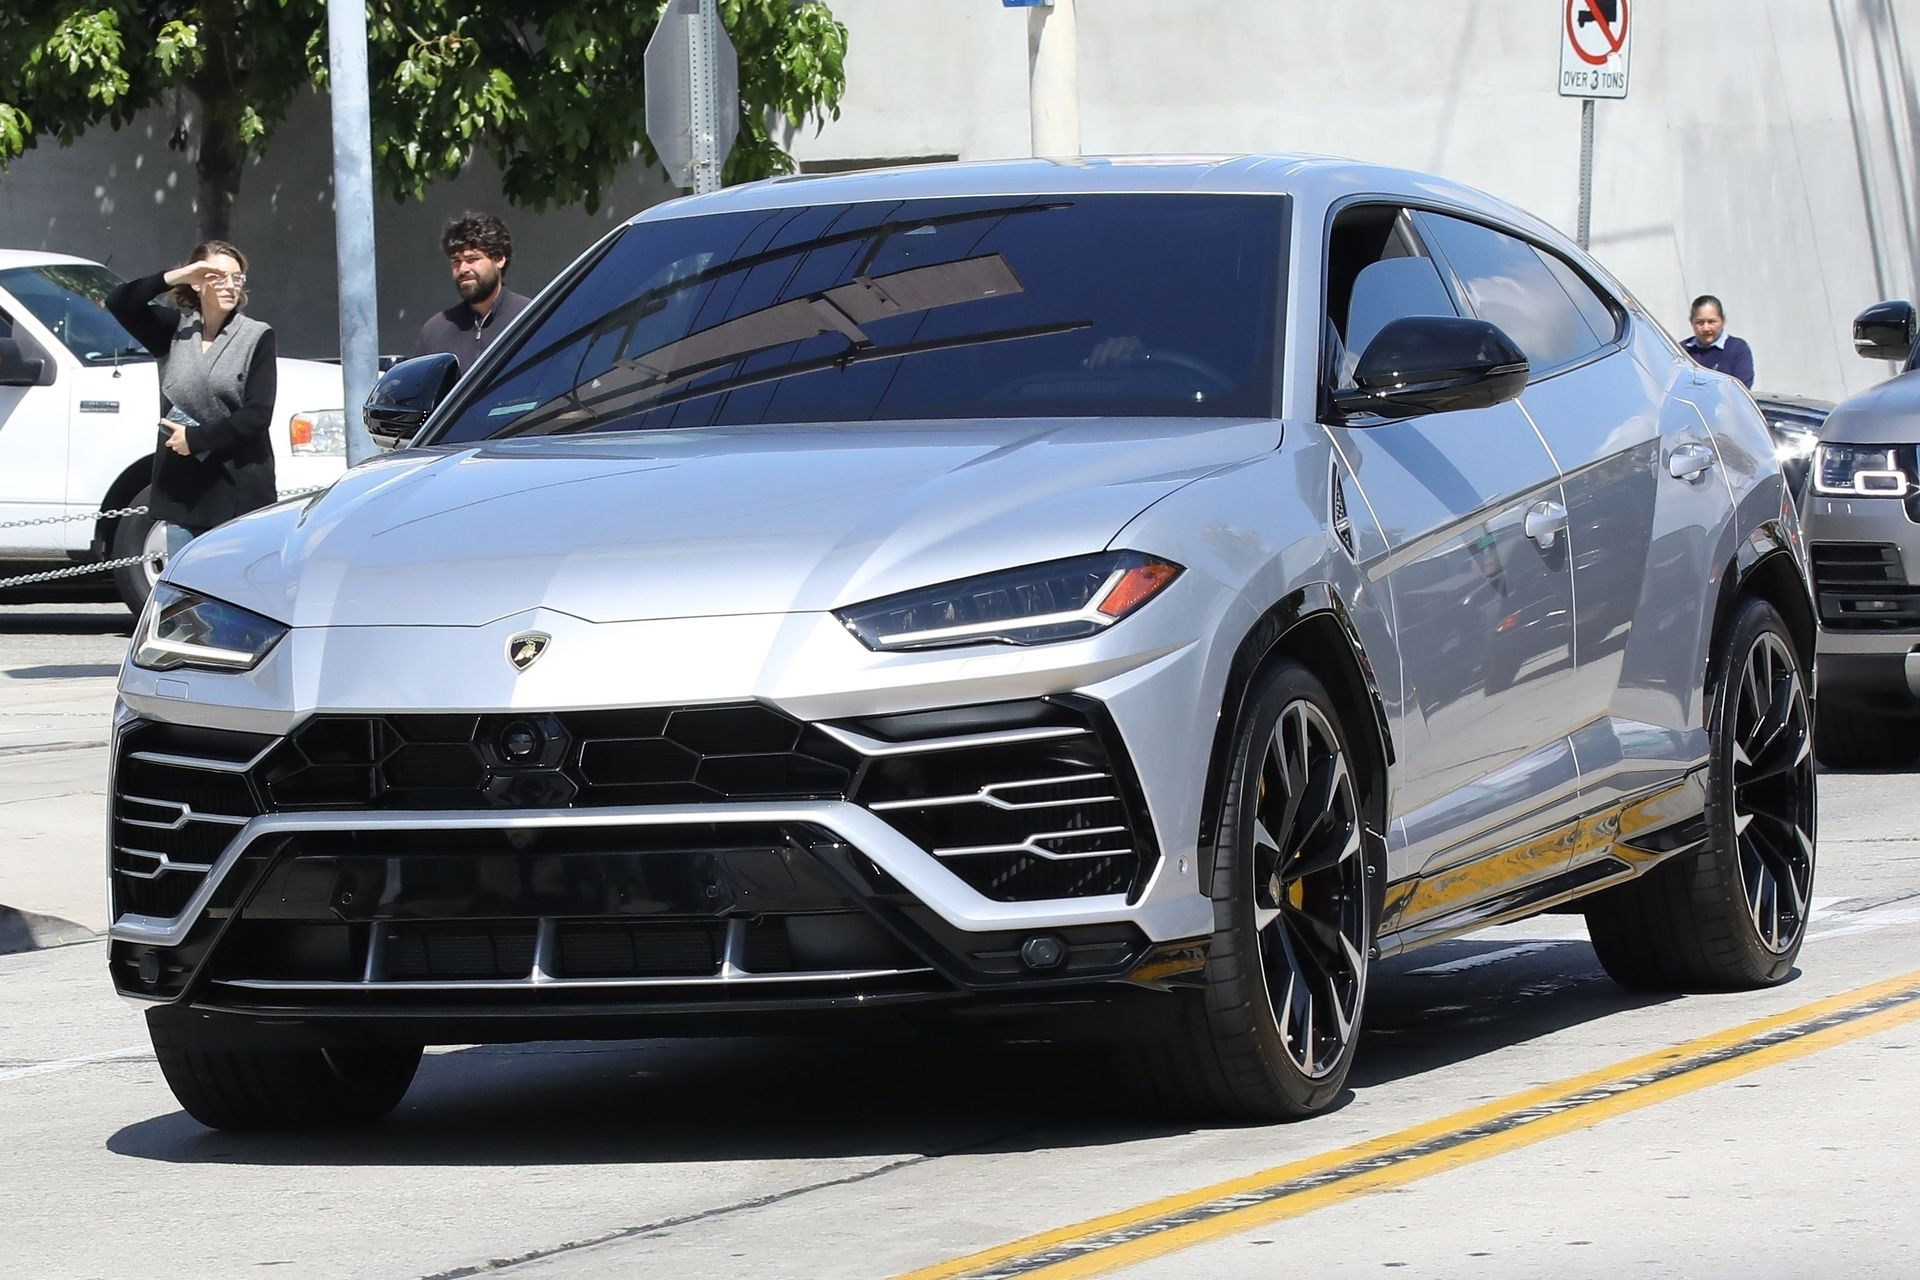 *EXCLUSIVE* Kylie Jenner gifts Travis Scott a new Lamborghini Urus truck for his bday!